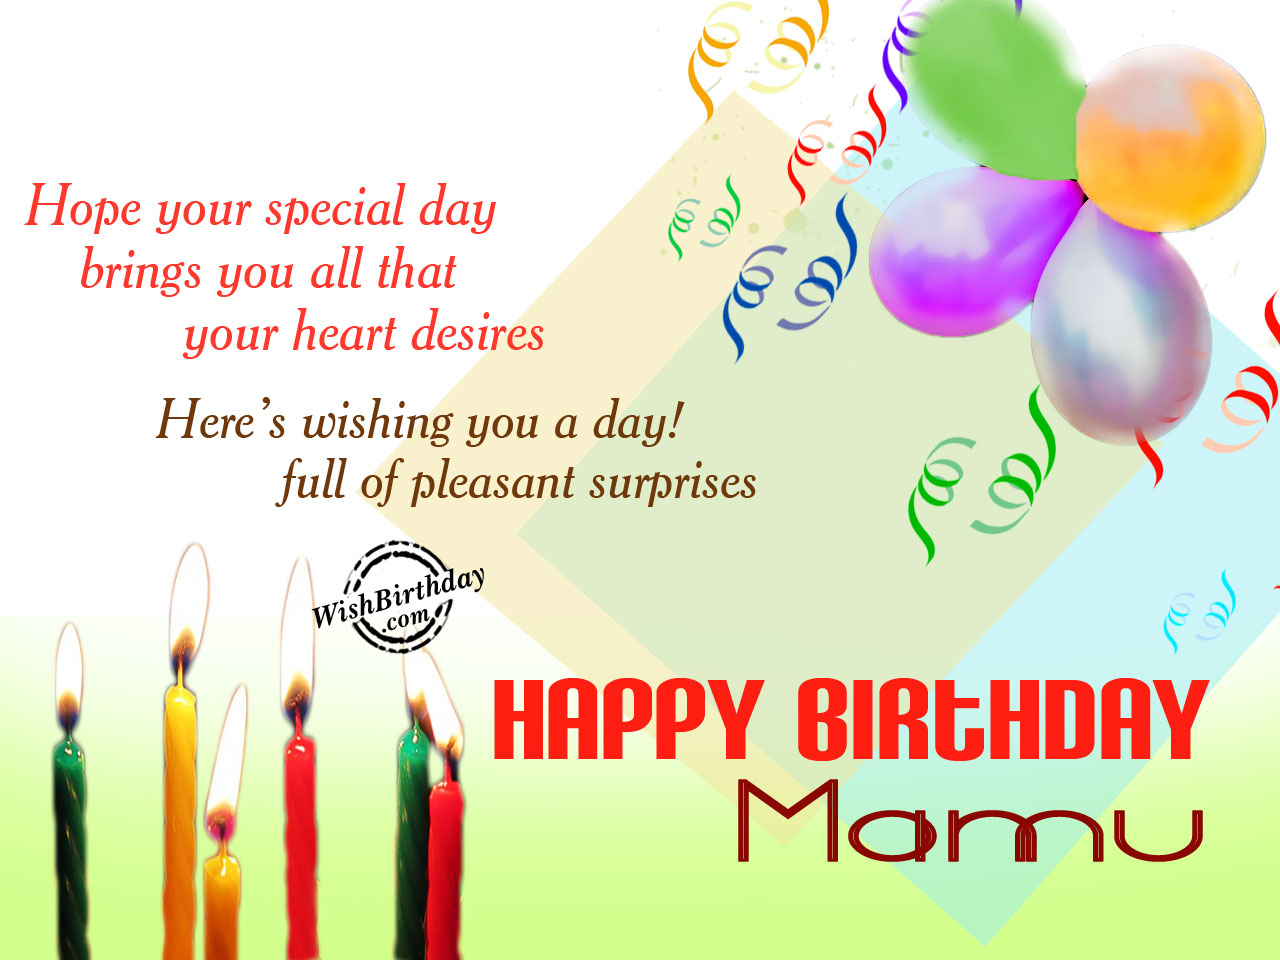 Happy Birthday Wishes Korean ~ Birthday wishes for mama ji images pictures